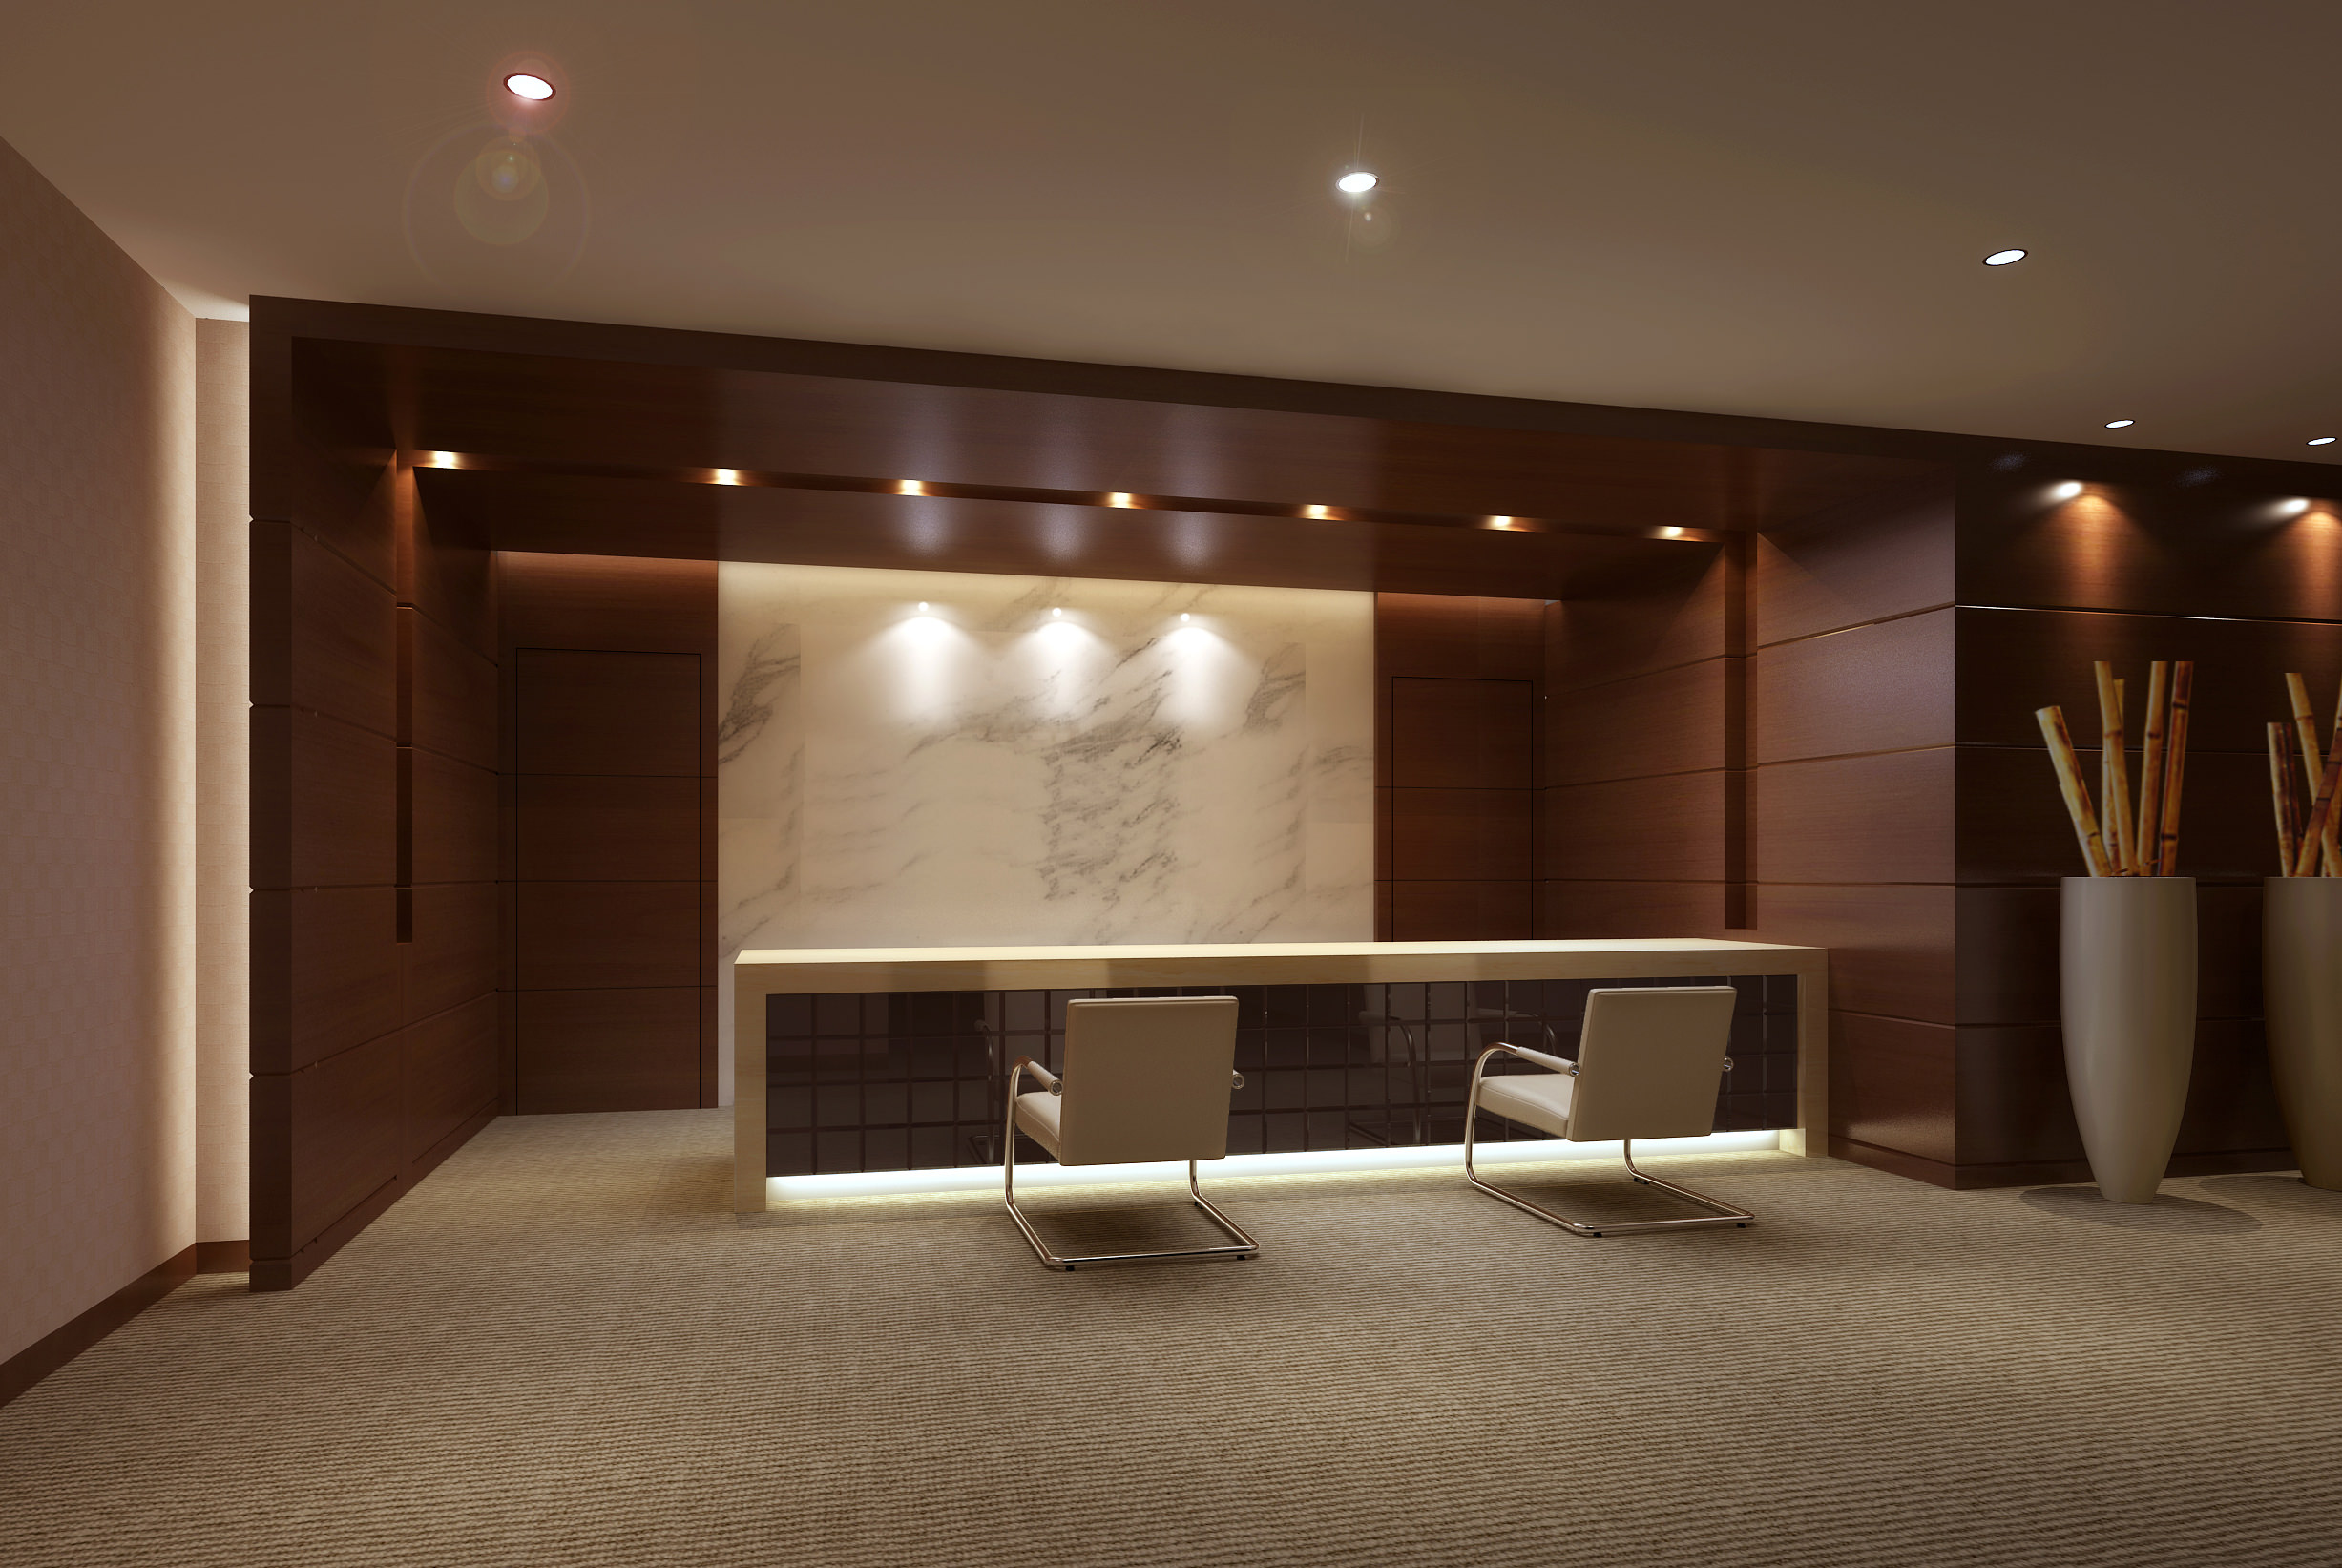 Office Space With High End Lighting 3d Model Max 1 ...